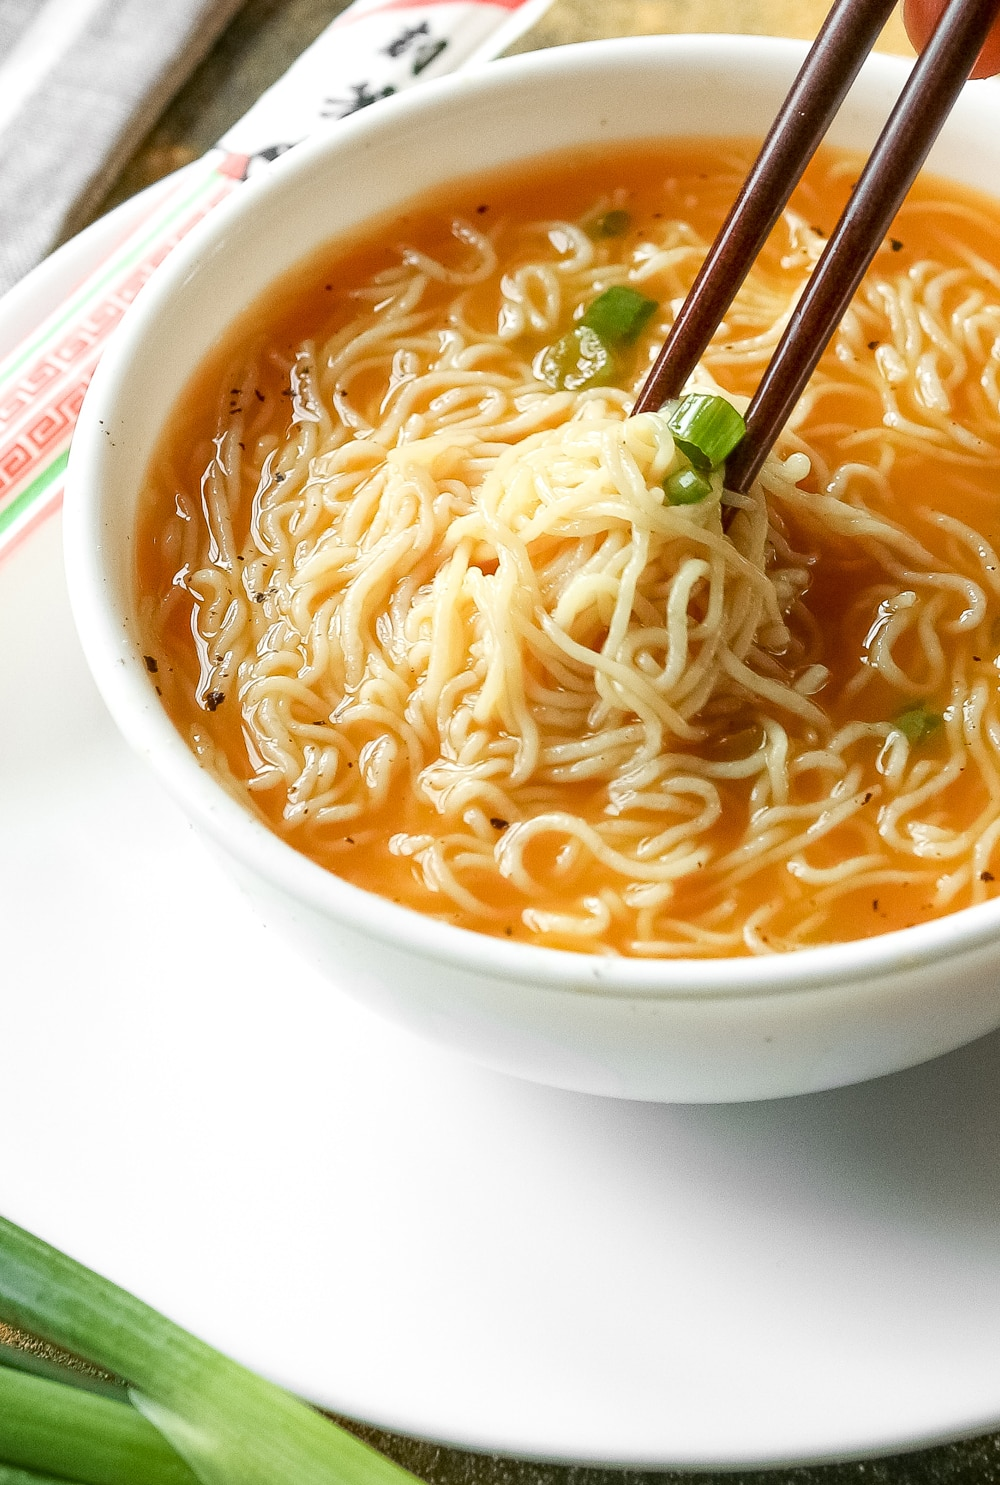 A close up of soup in a bowl.